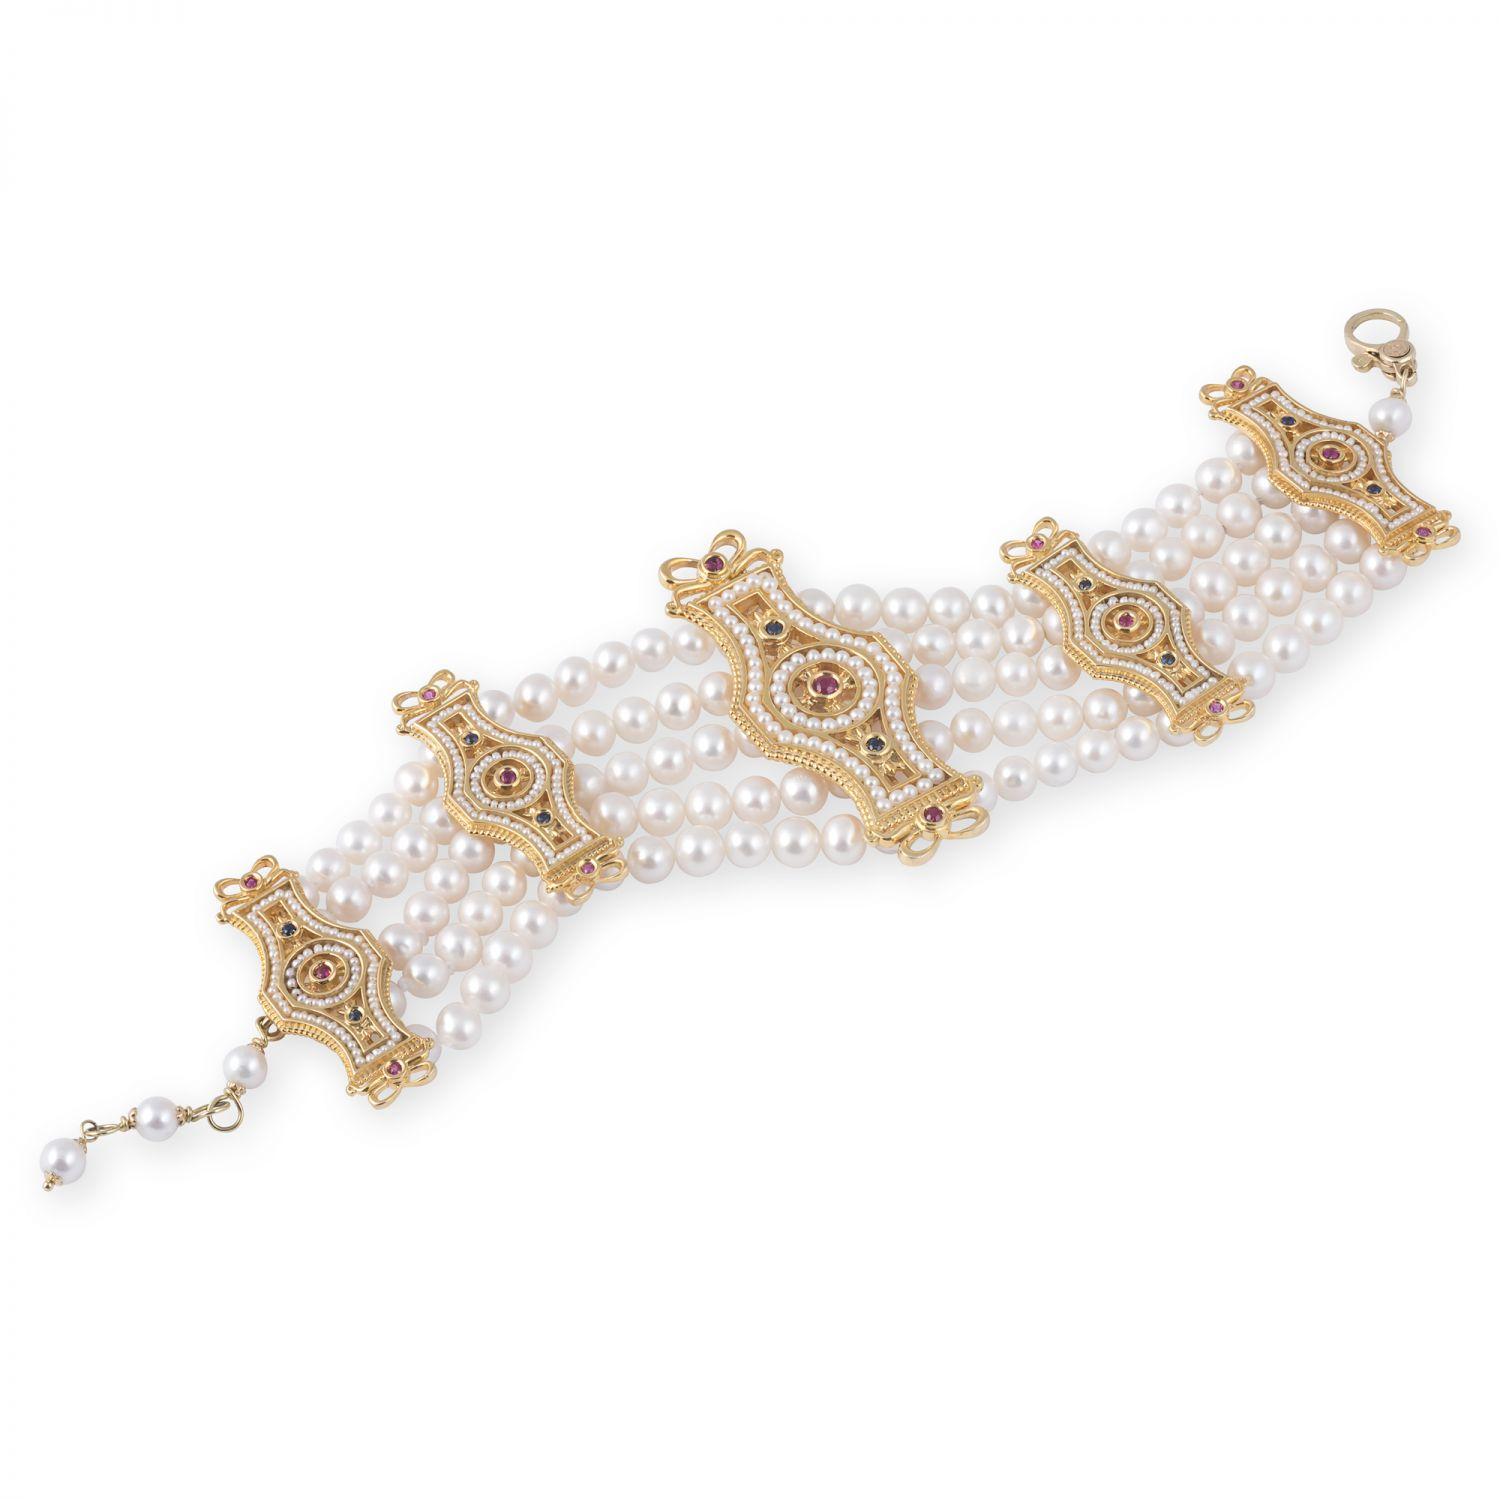 Gold Bracelet with Pearls and precious Stones (14270)